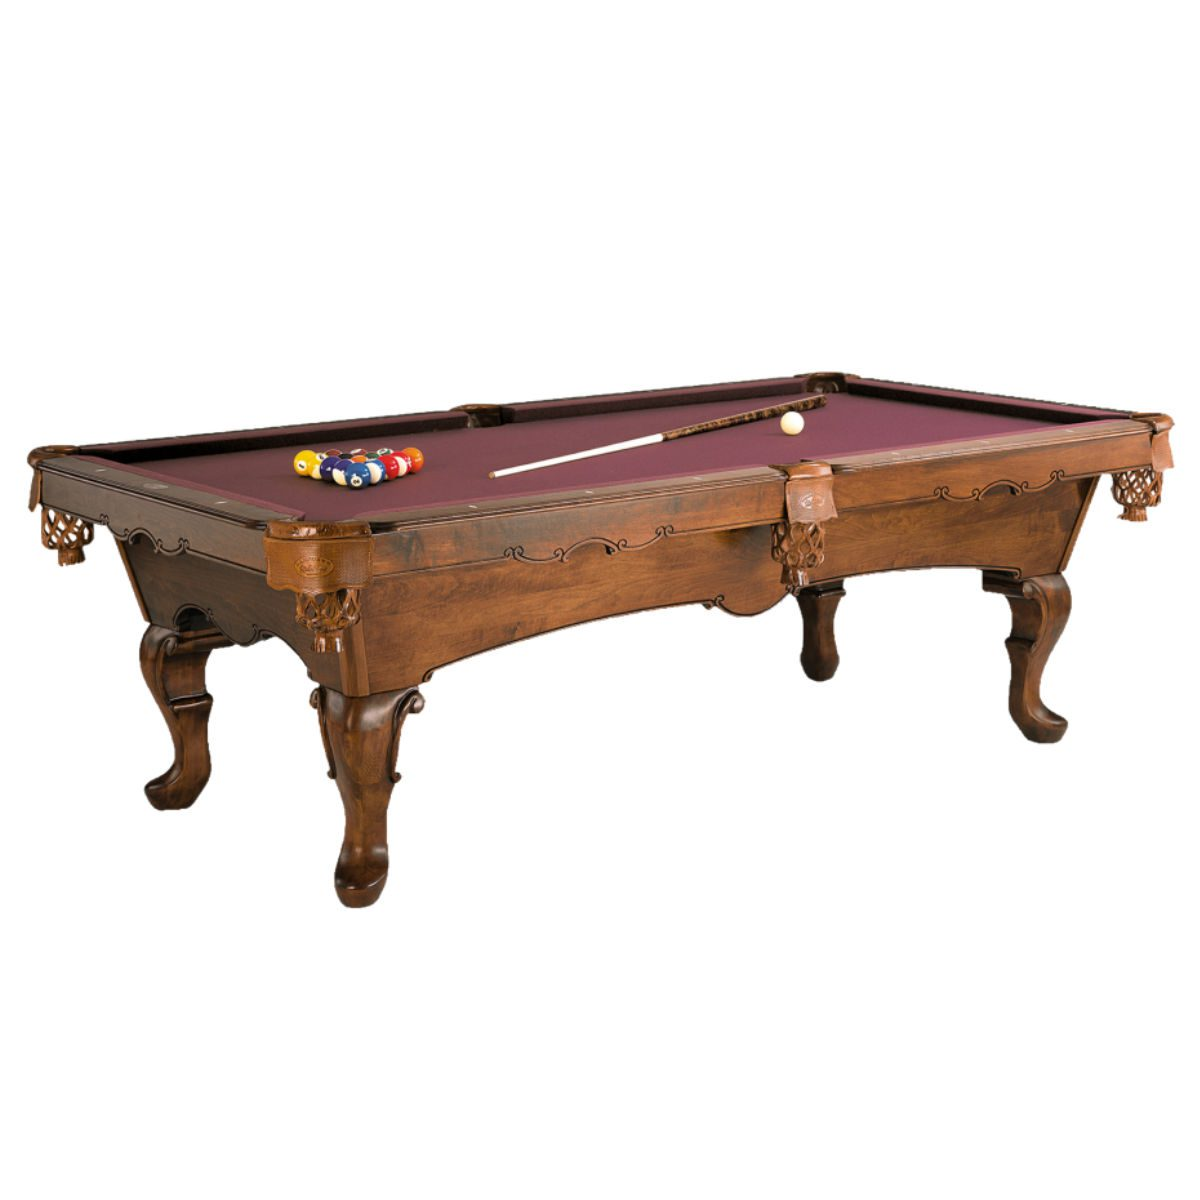 New Lafayette Pool Table Olhausen Montgomeryville Pa